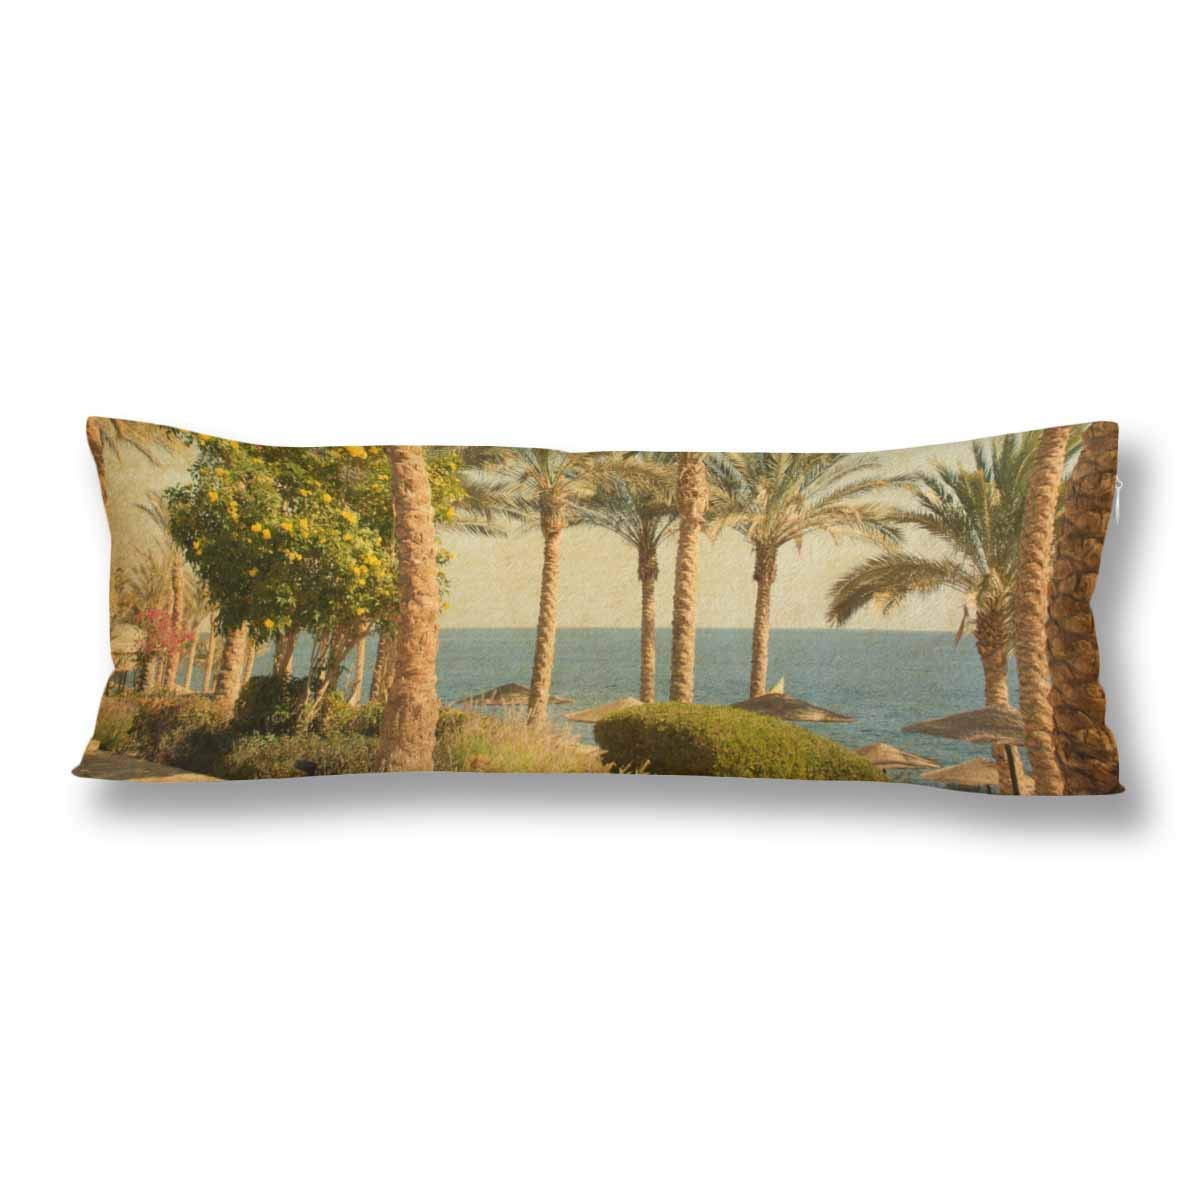 ABPHOTO Beach Palms Blue Sea Sky Summer Holiday Body Pillow Covers Case Protector 20x60 inch